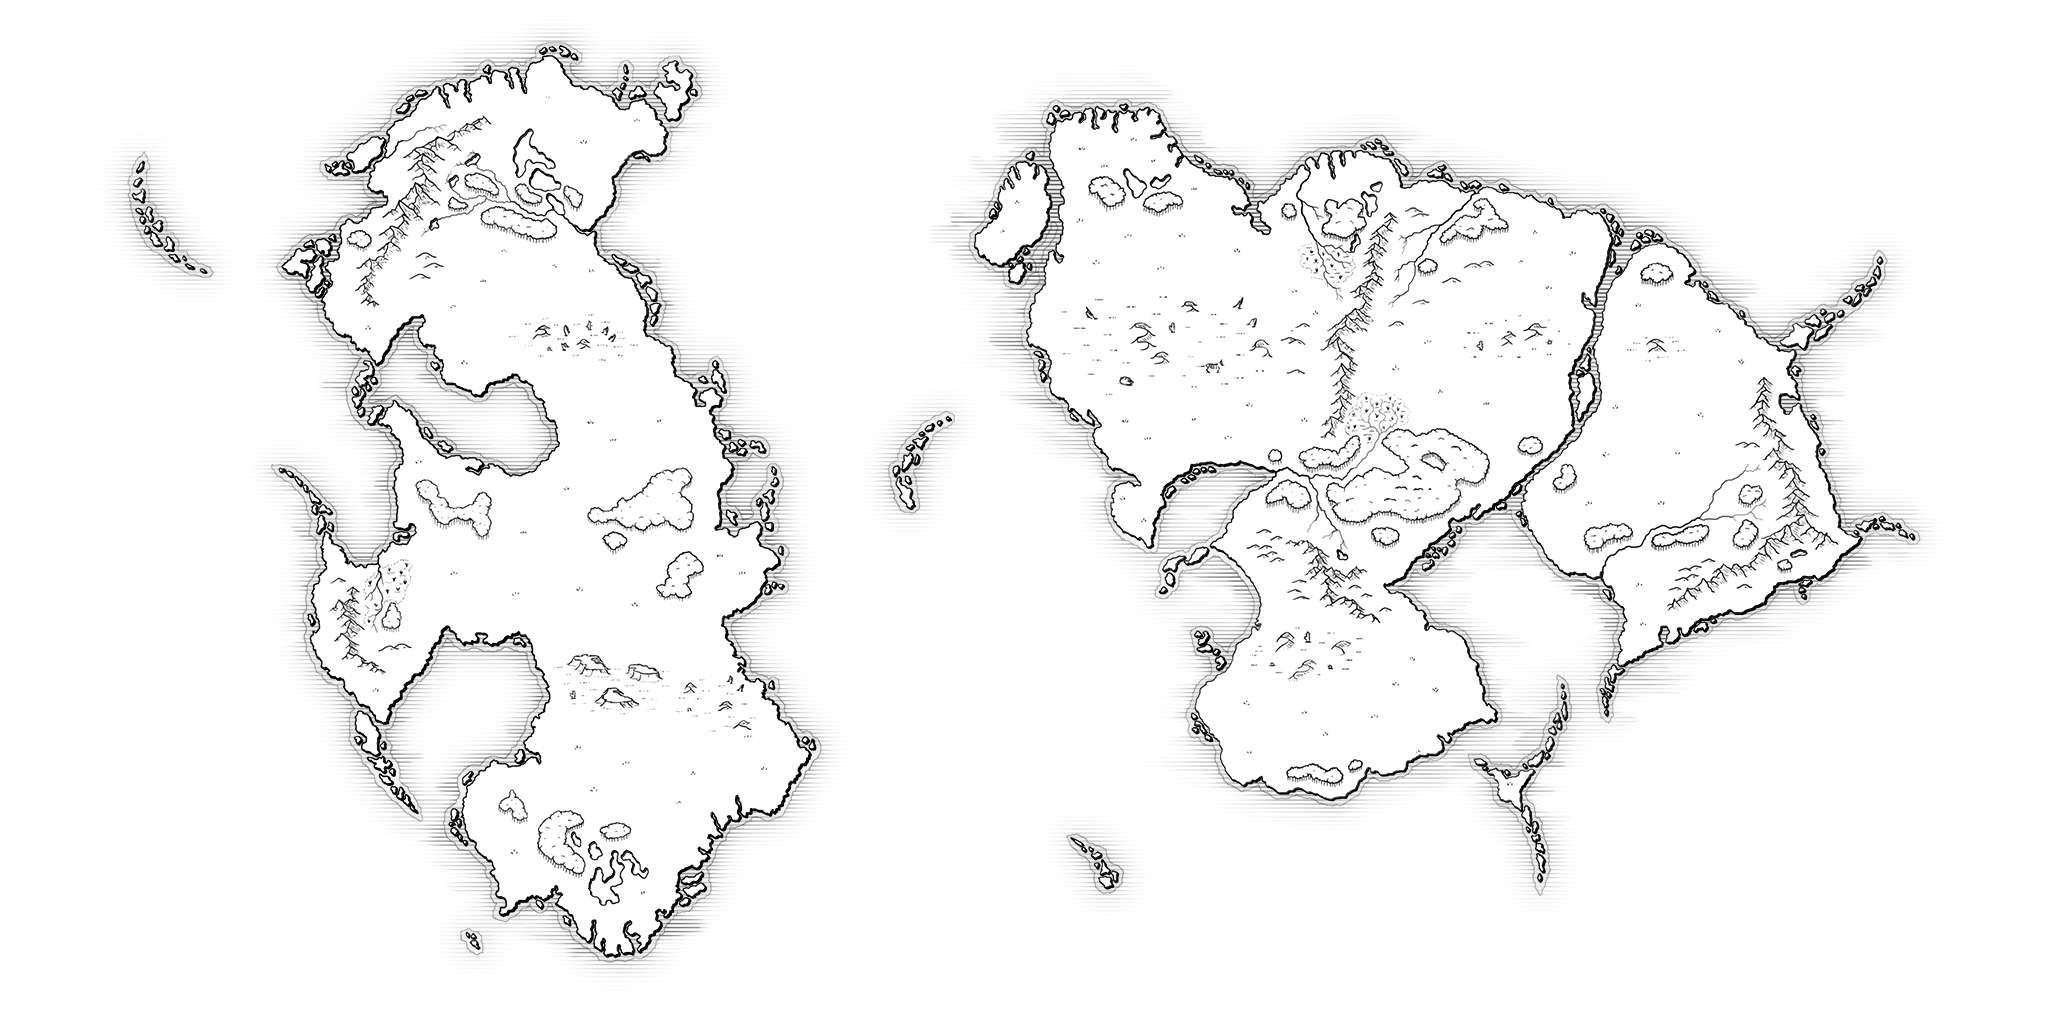 Step 9 - Styling your custom fantasy map